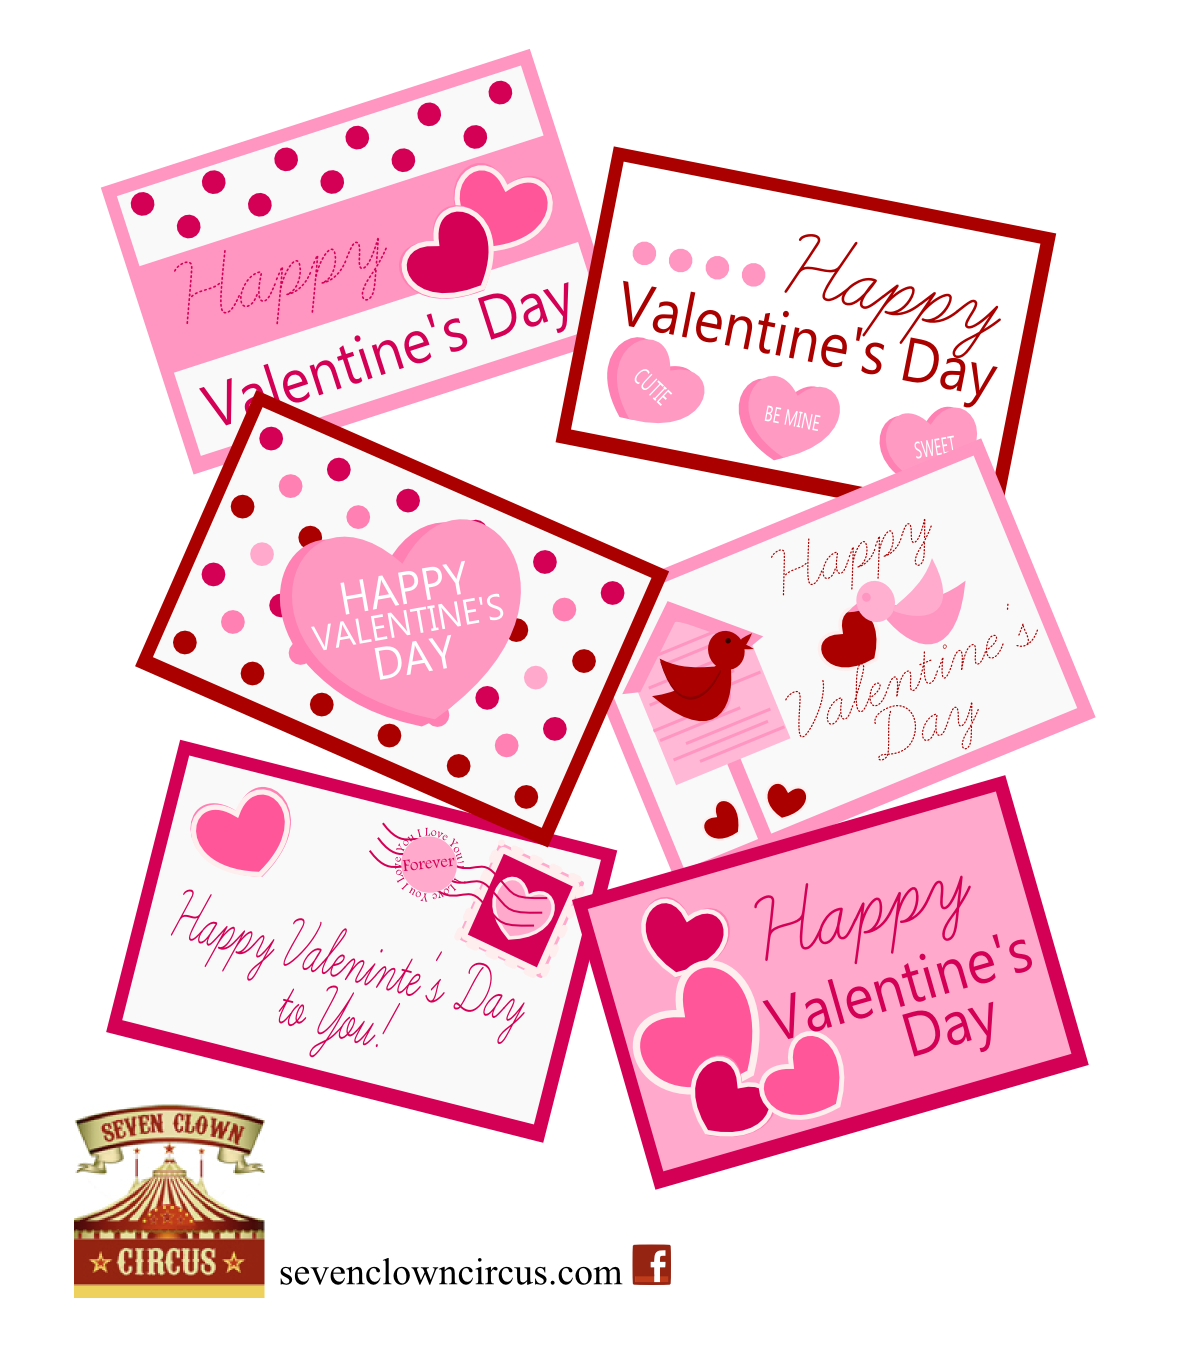 graphic about Printable Teacher Valentine Cards Free identify No cost Printable Valentines Playing cards For Lecturers. Printable